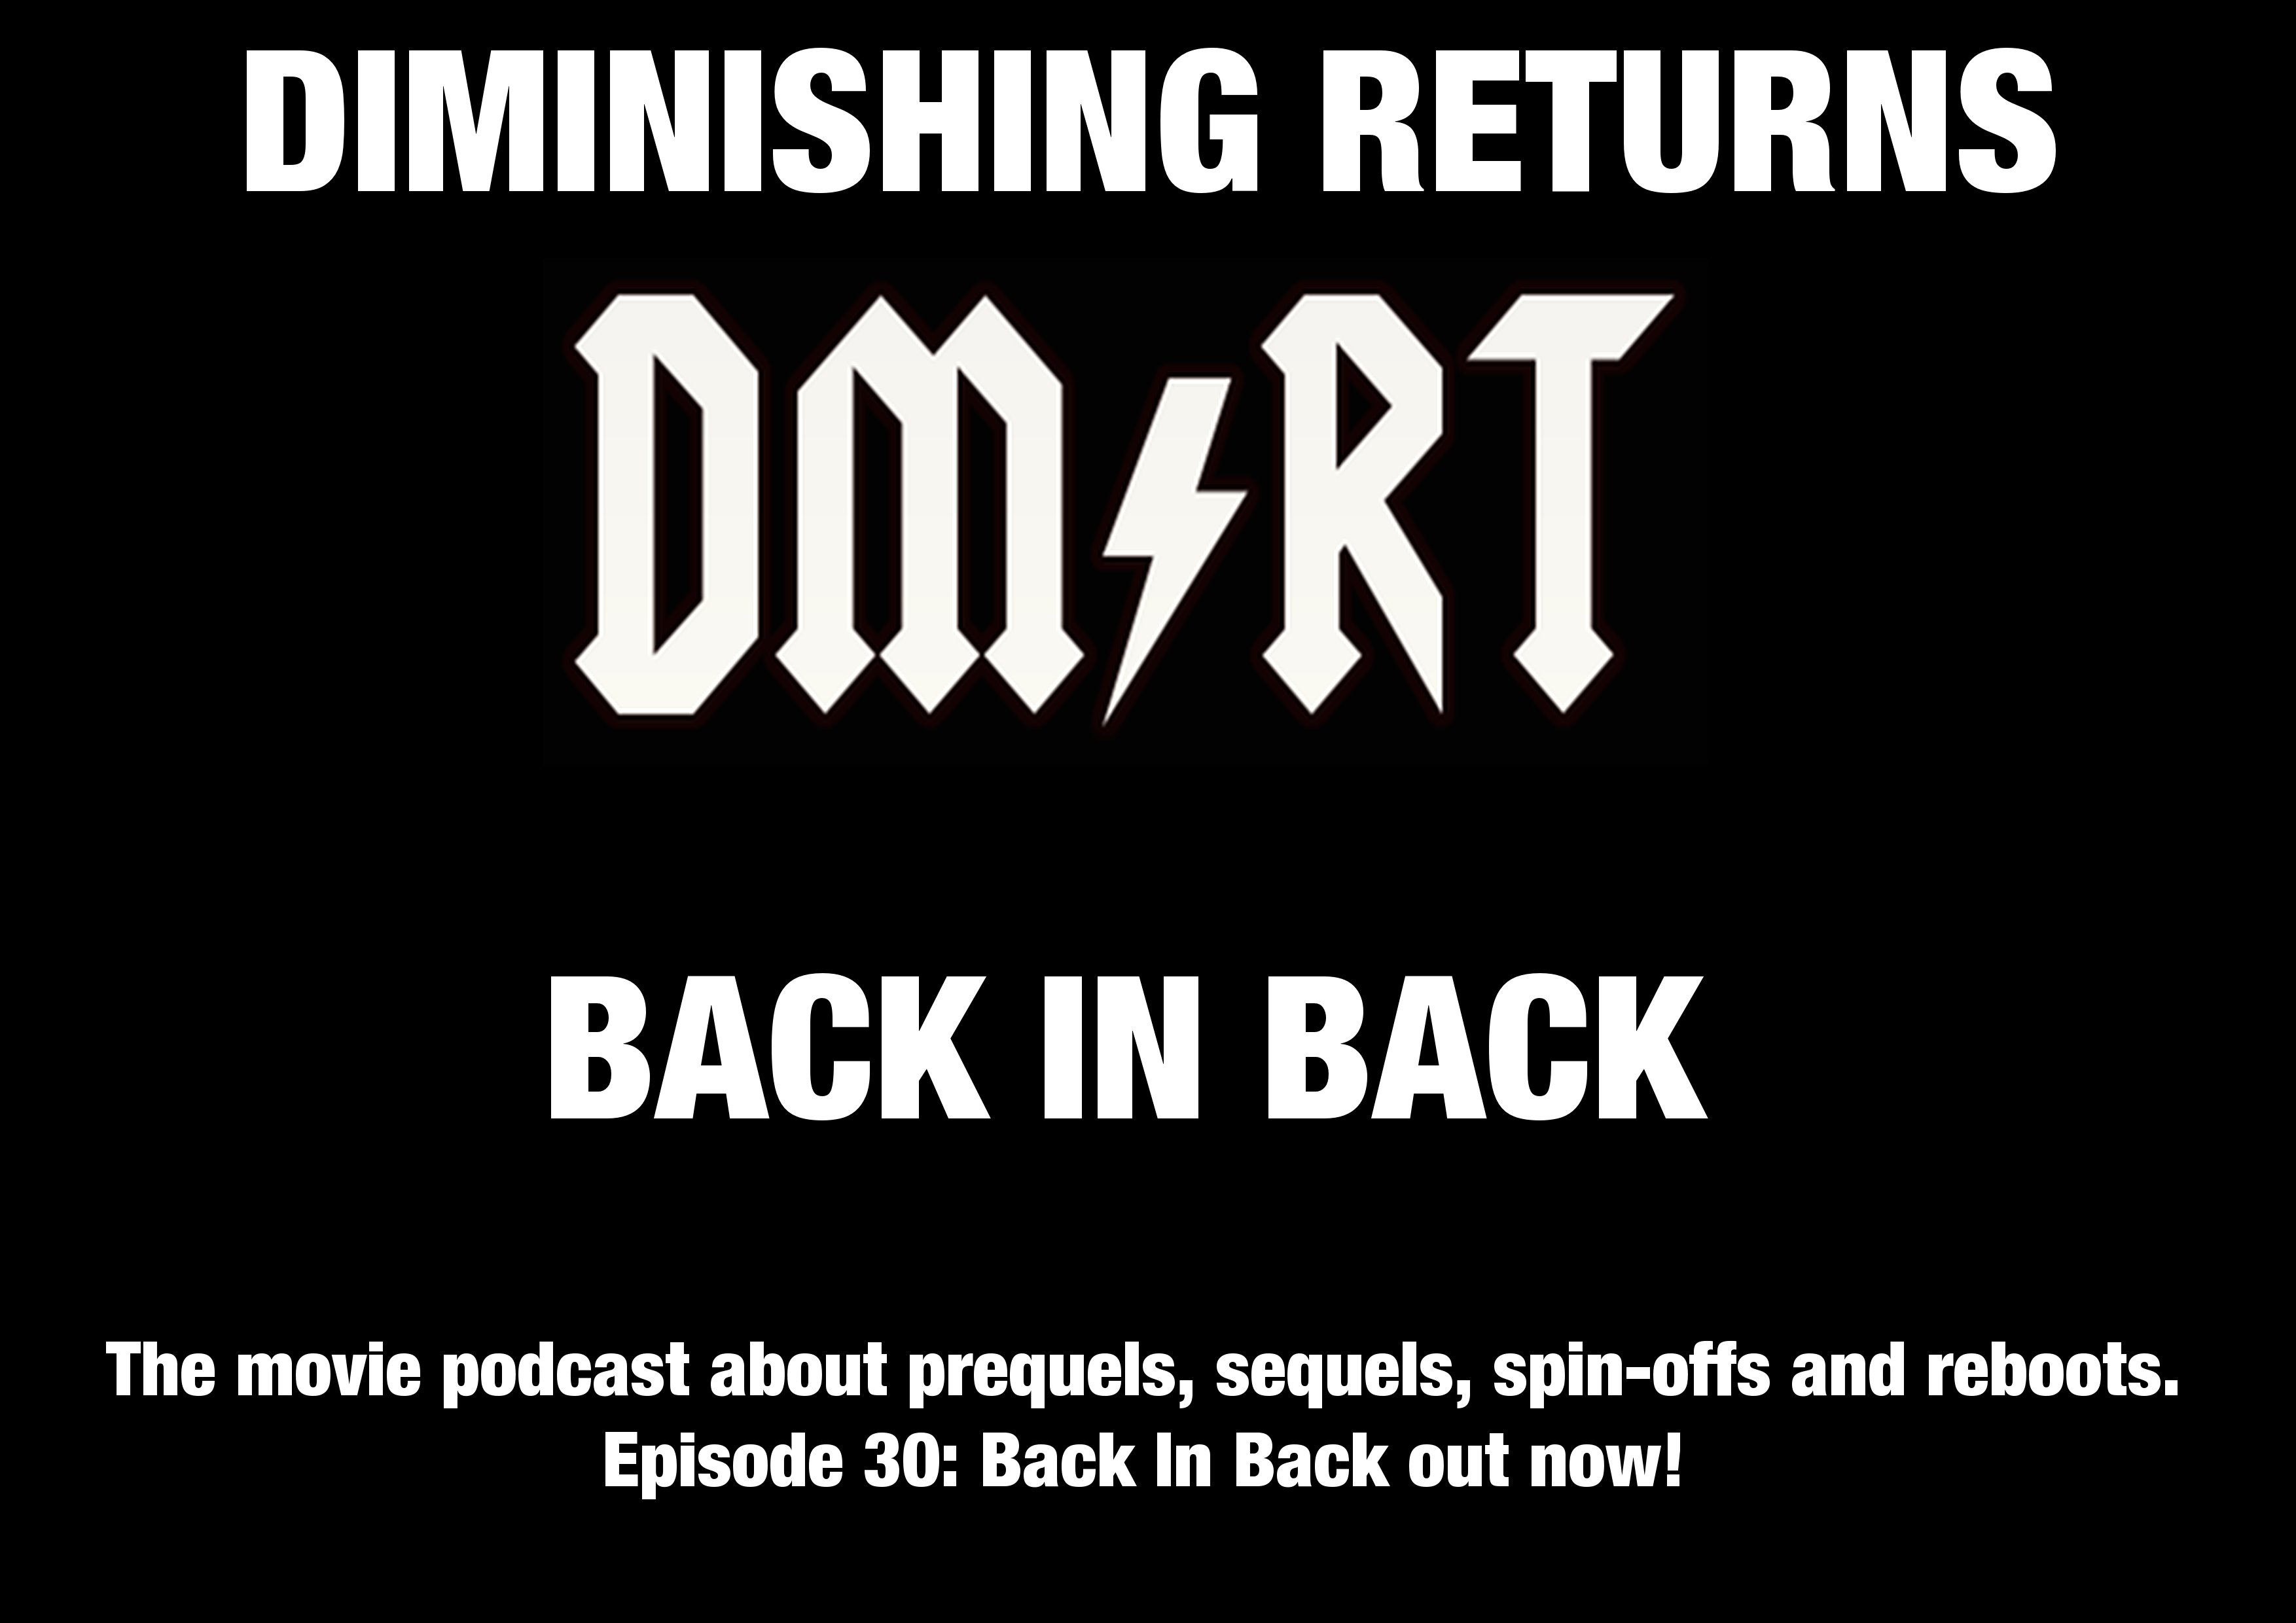 Diminishing Returns: The Movie Podcast About Sequels, Prequels, Spin